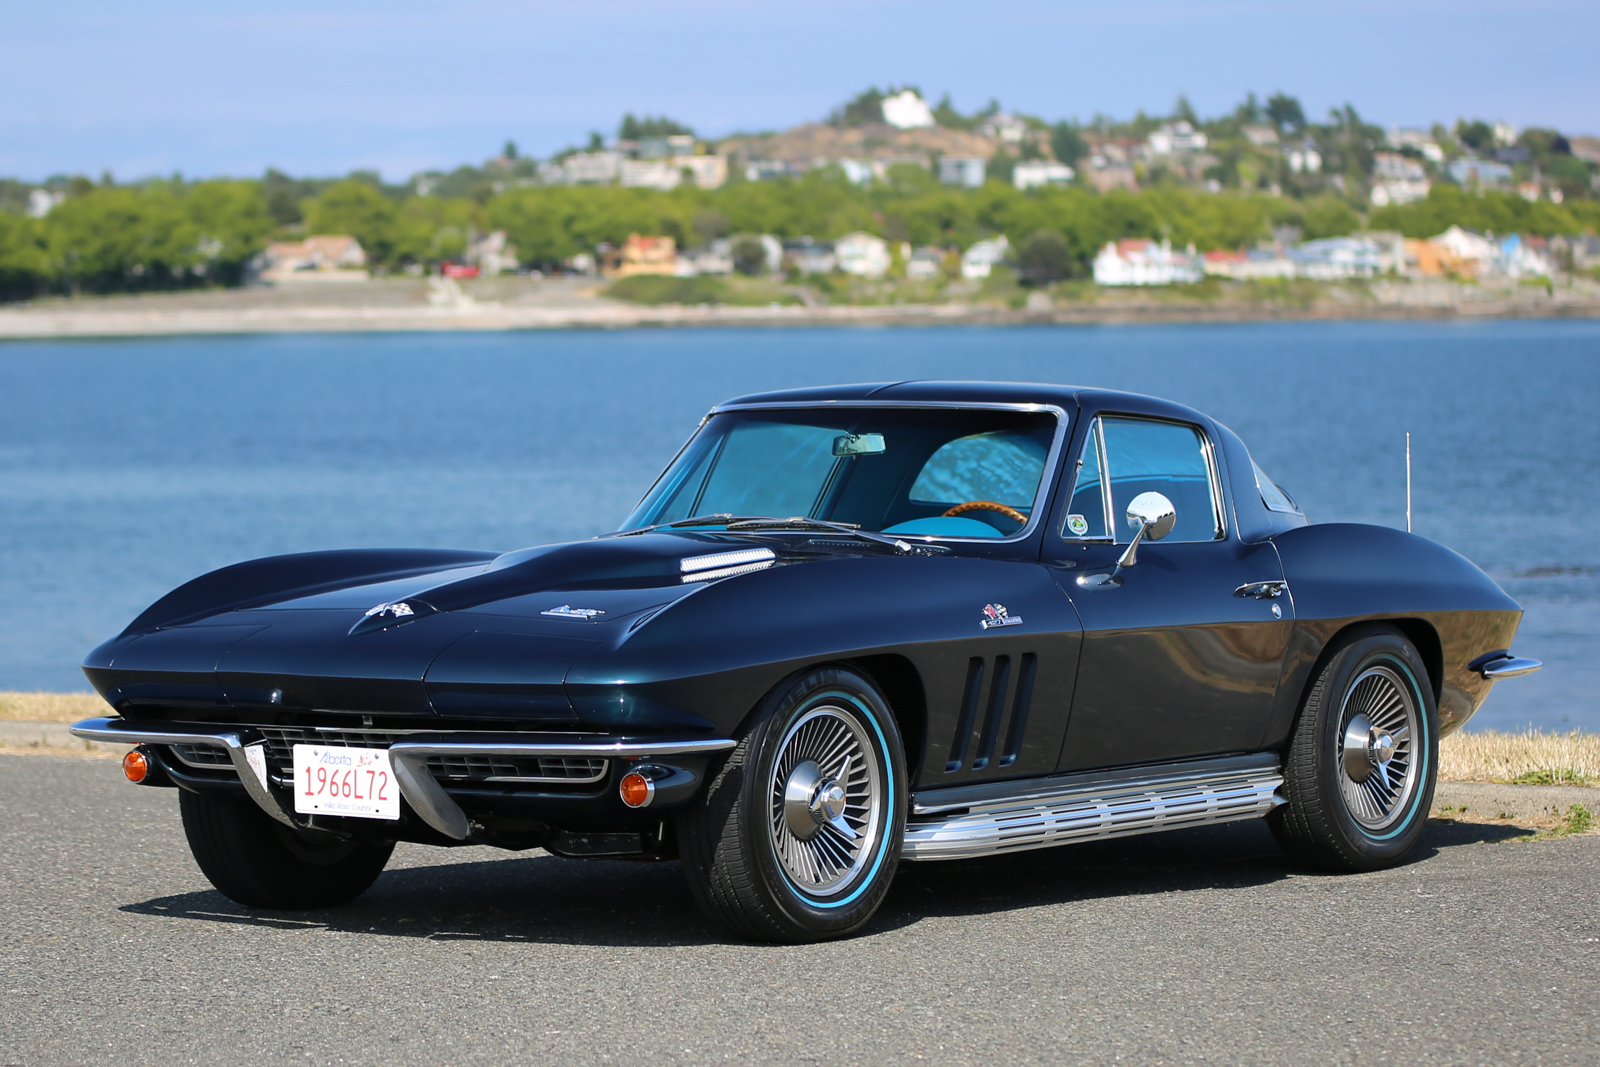 1966 chevrolet corvette l72 coupe silver arrow cars ltd. Black Bedroom Furniture Sets. Home Design Ideas